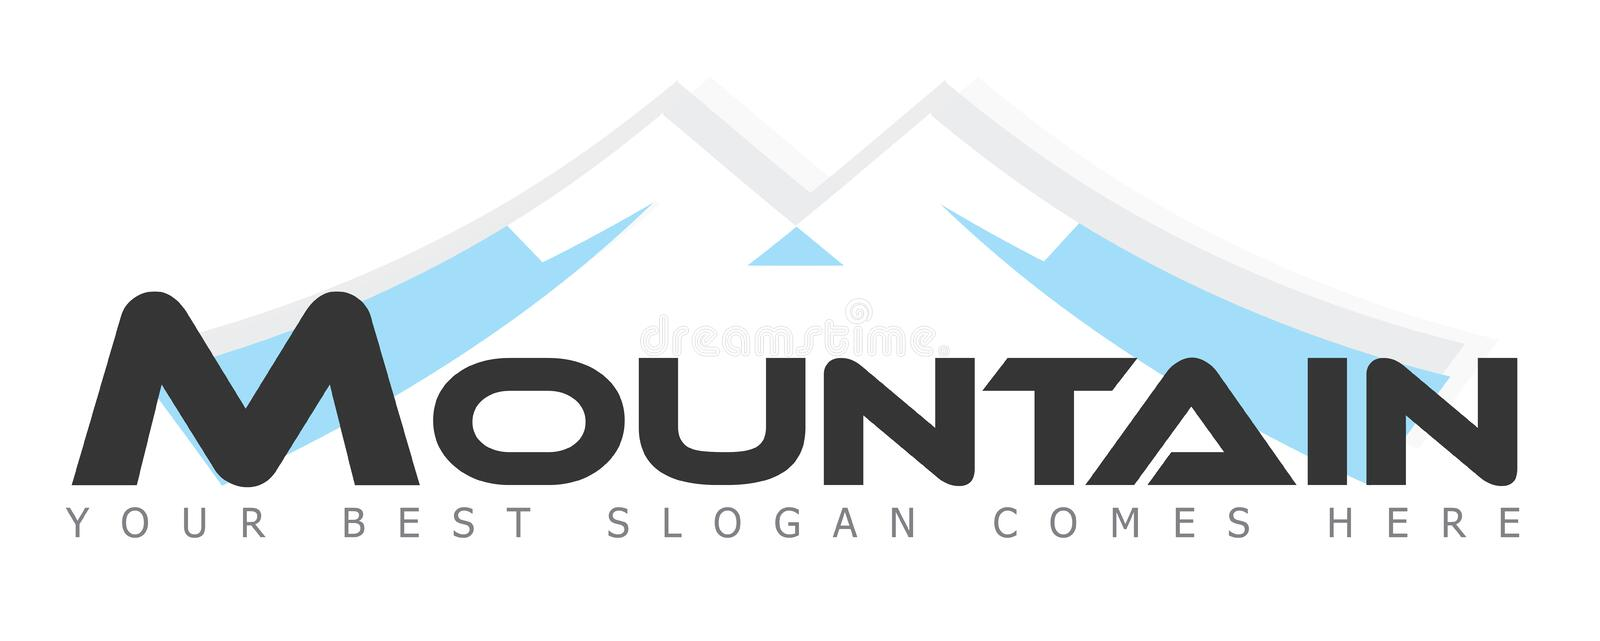 Mountain logo royalty free illustration